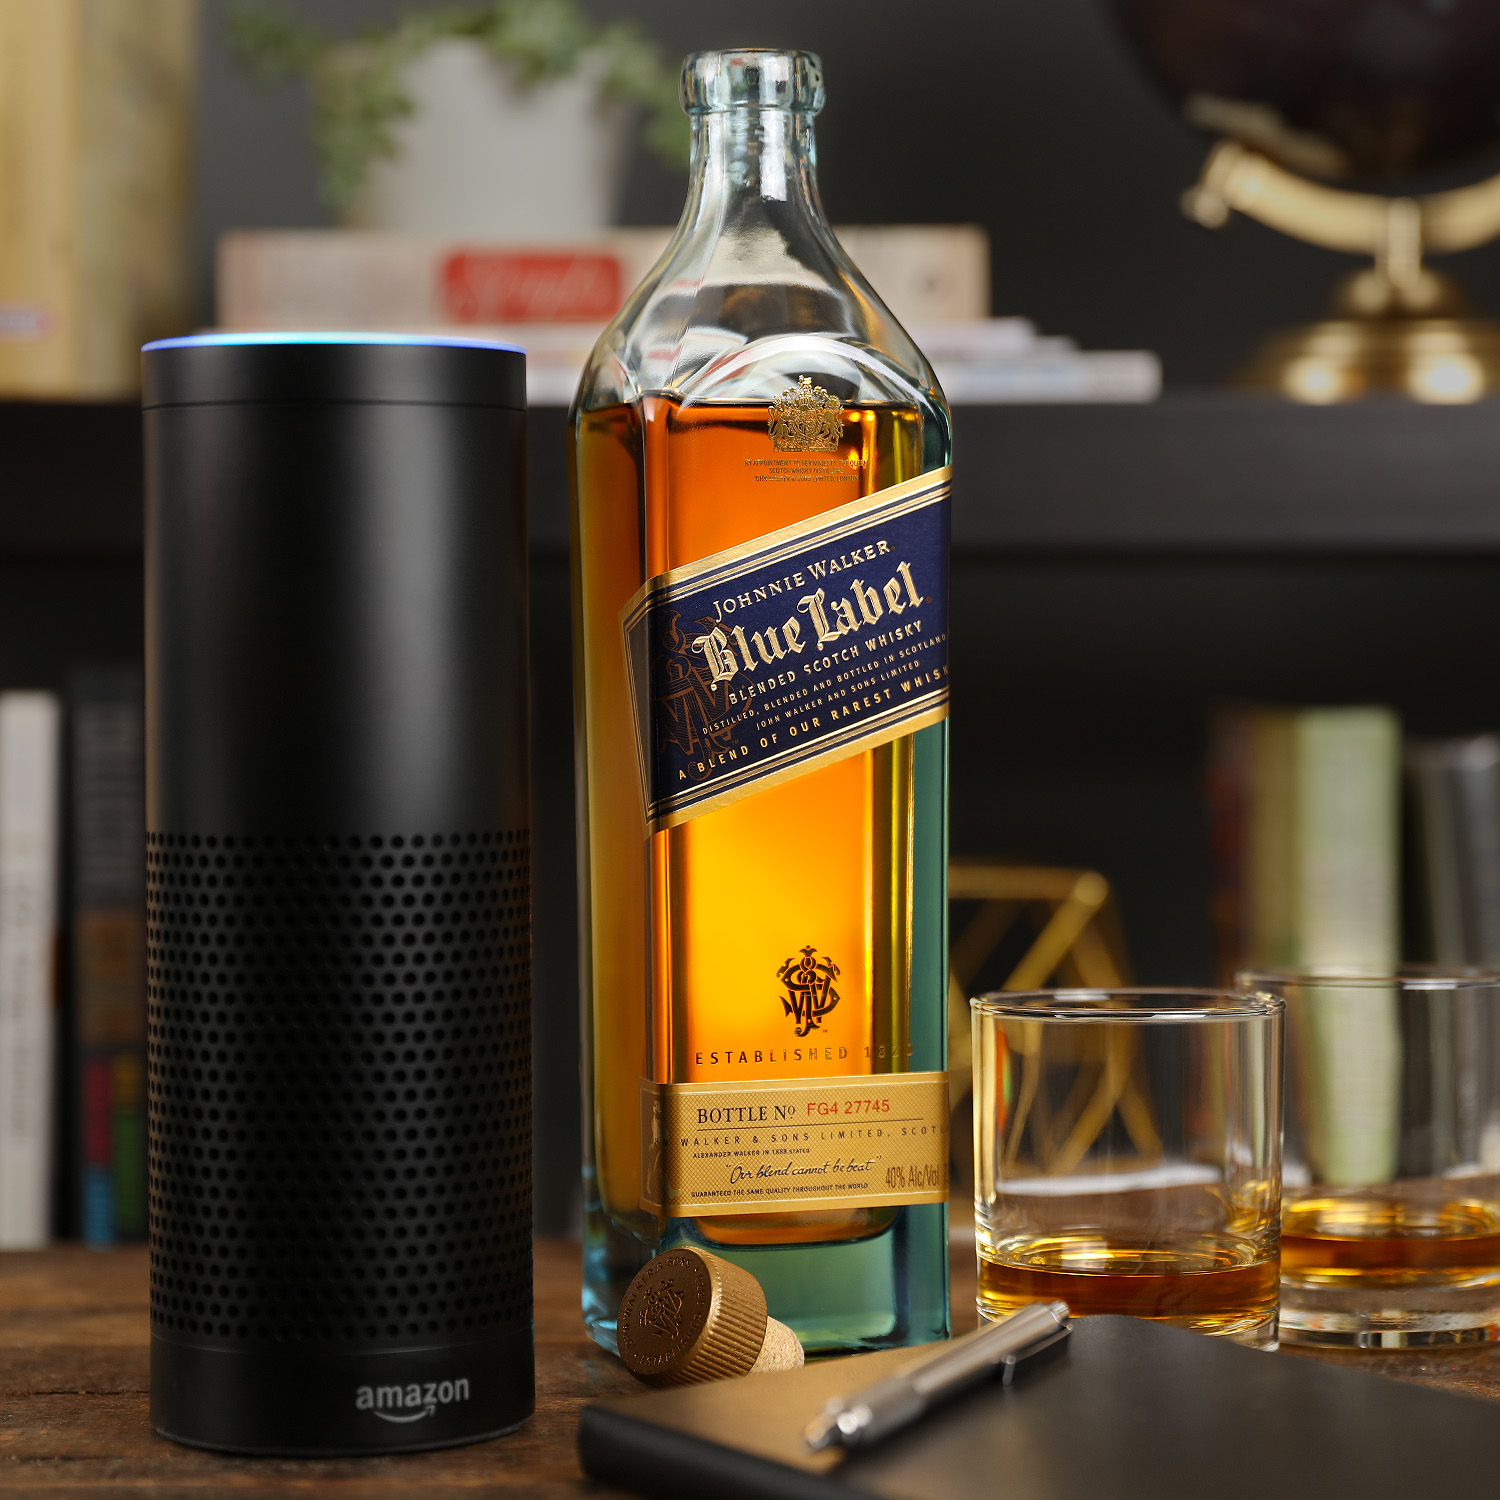 Johnnie Walker collaborates with Amazon to develop an innovative Alexa skill bringing to life over two centuries of heritage and blending expertise